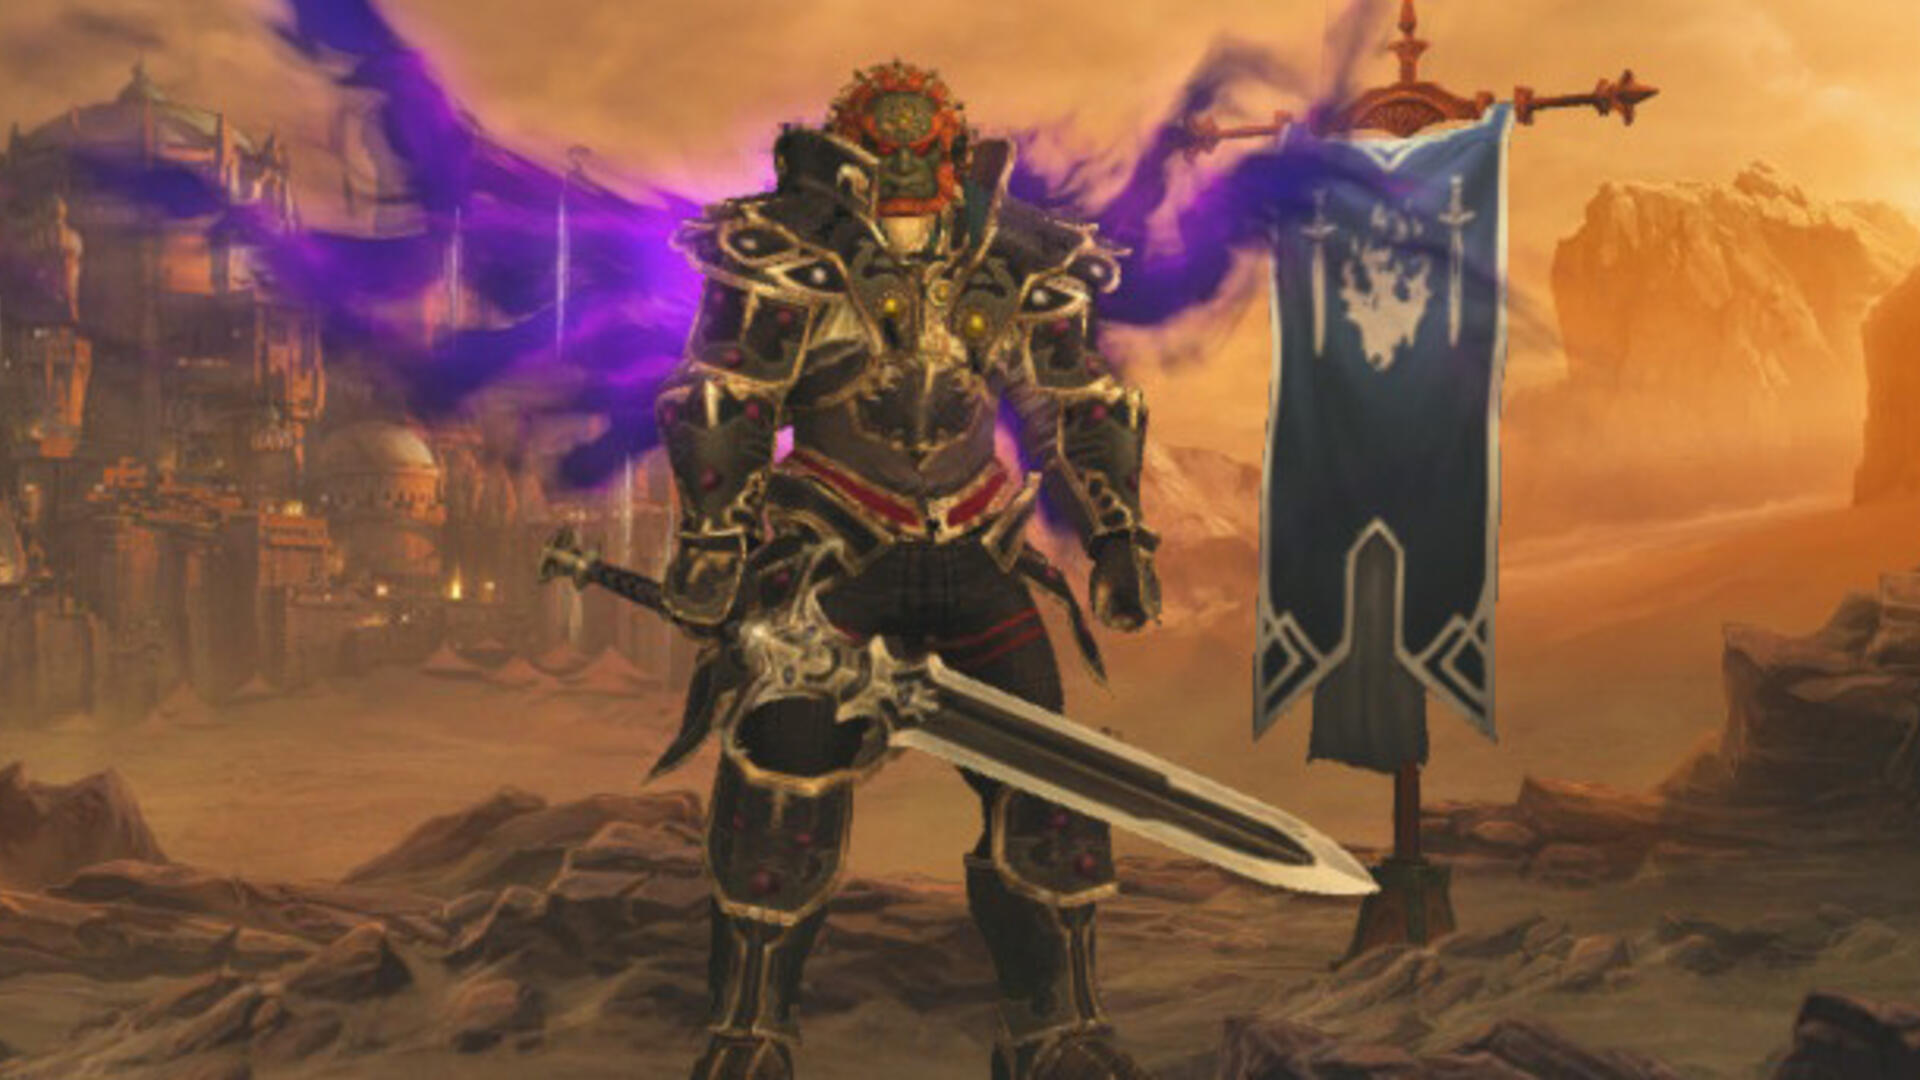 Diablo 3 is Coming to Switch This Fall, and You Can Play as